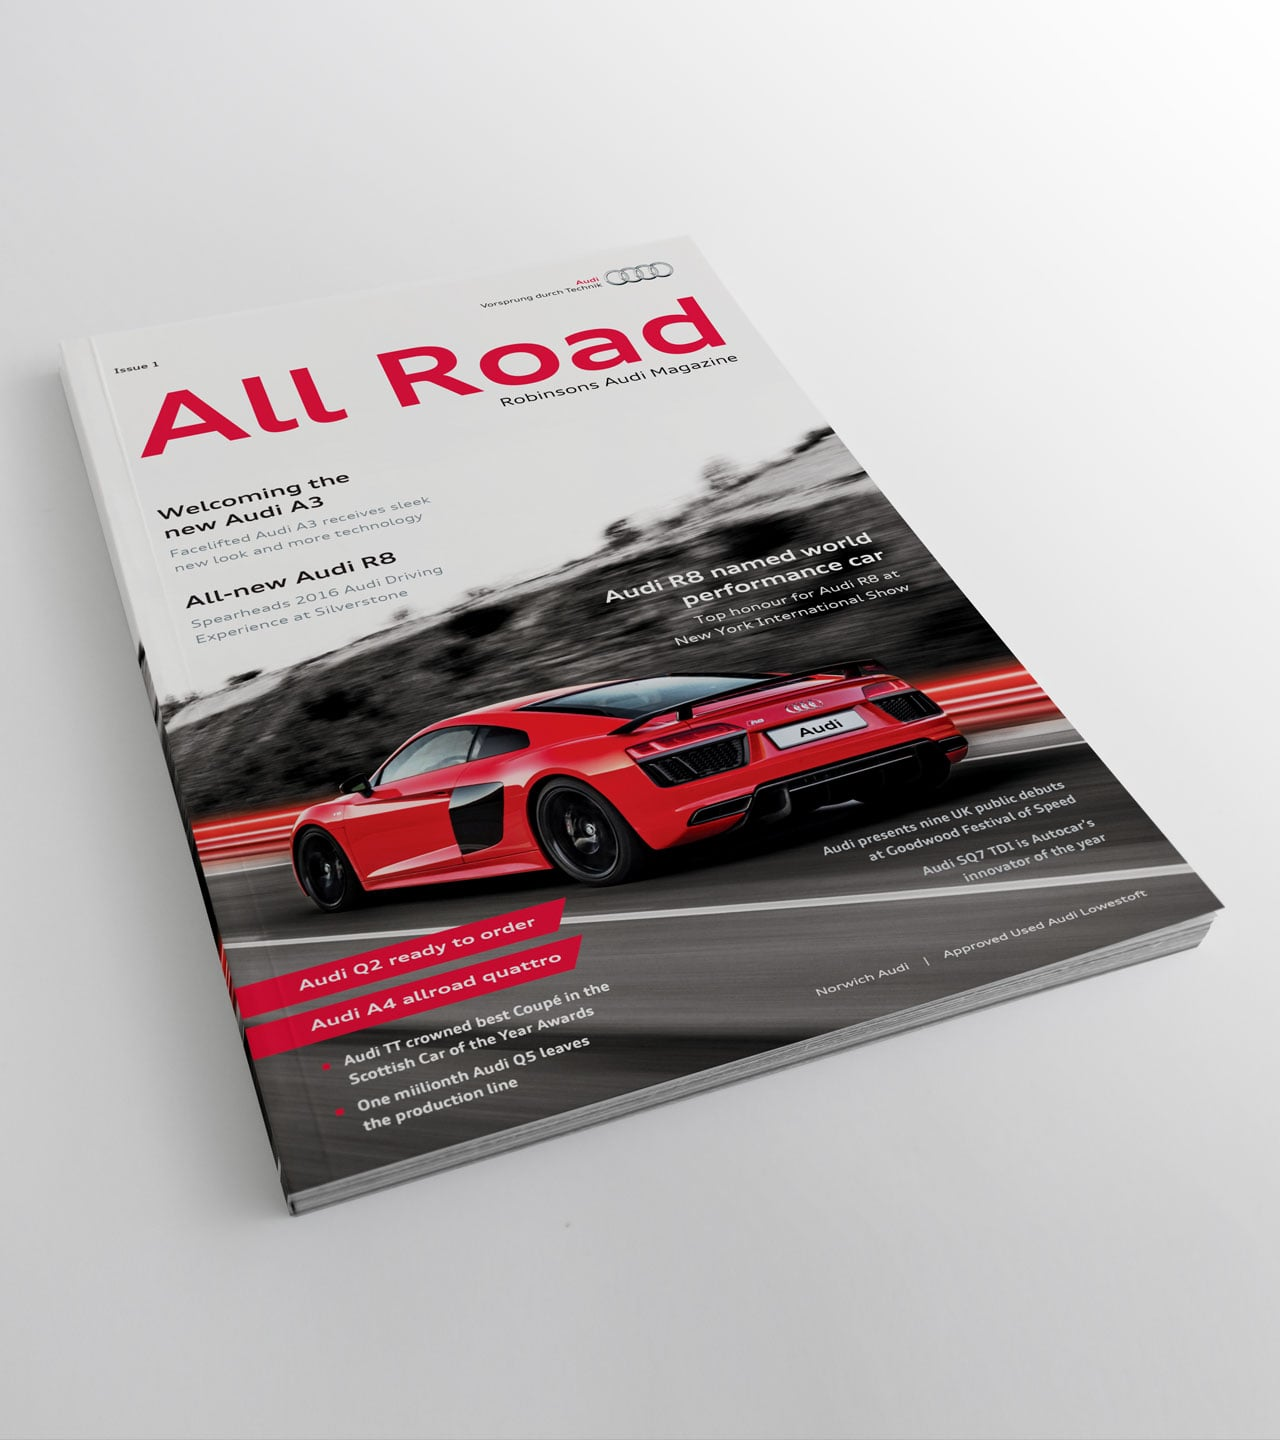 Robinsons audi allroad magazine front cover